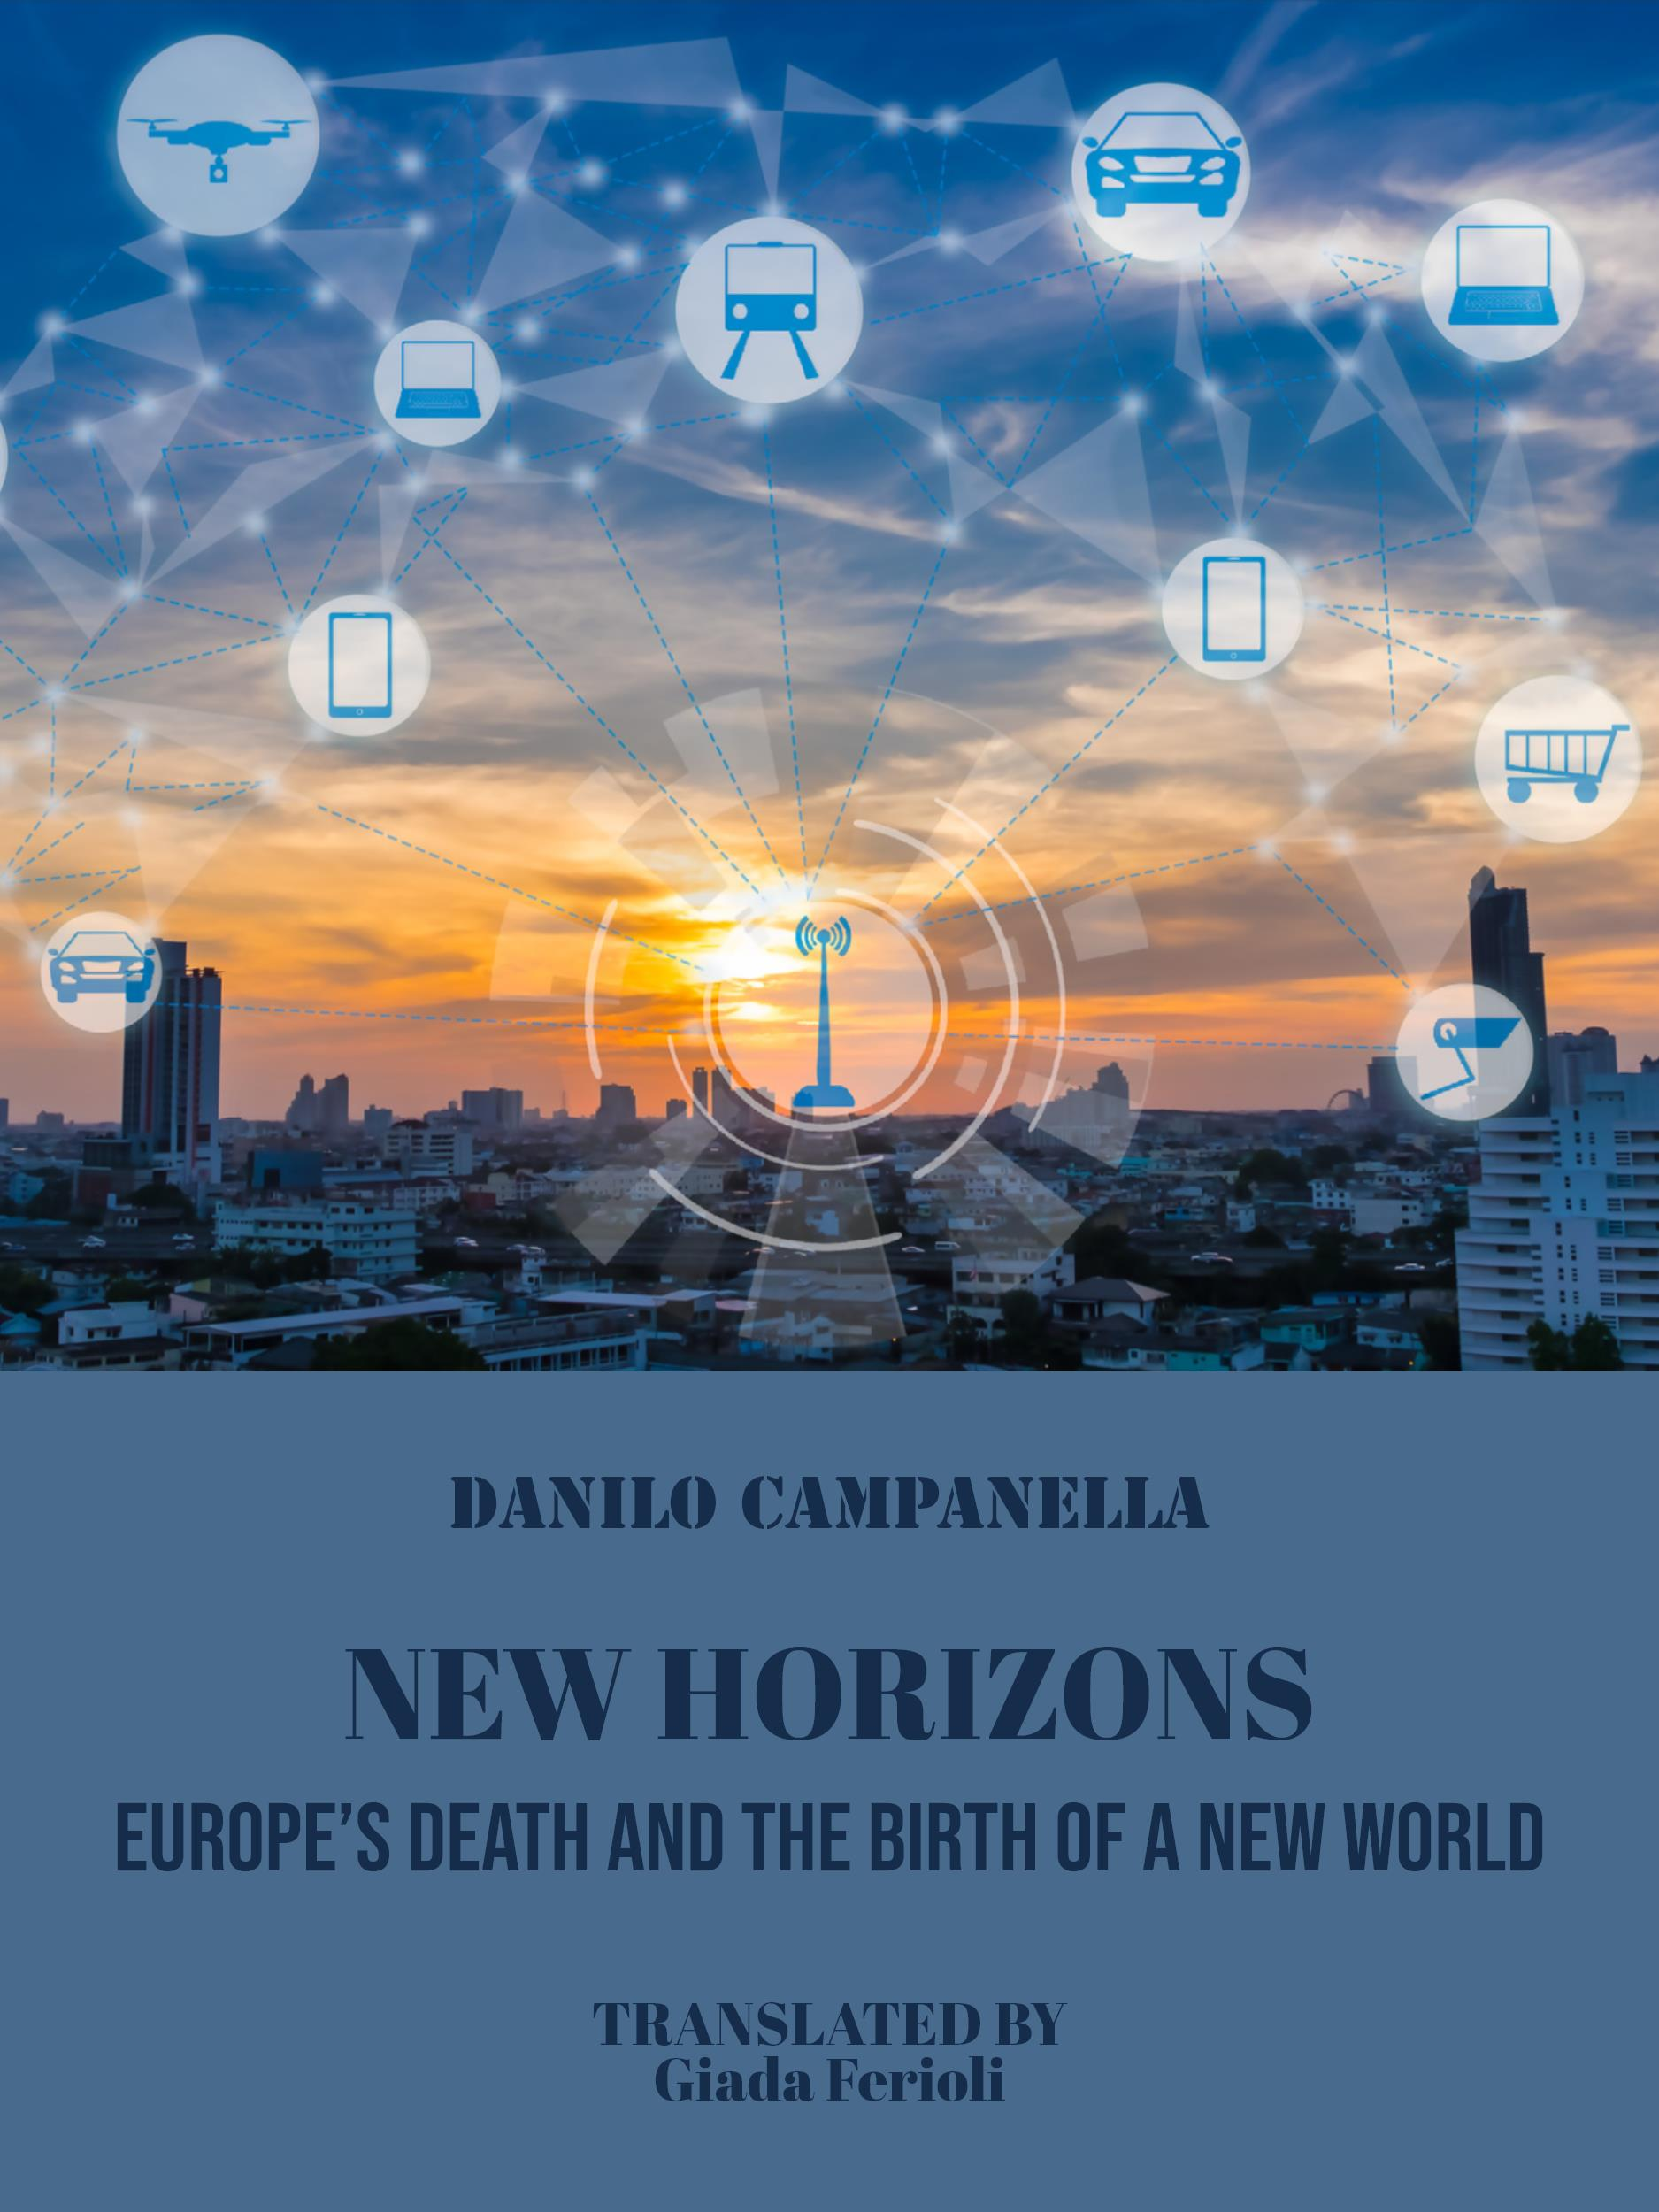 New horizons. Europe's death and the birth of a new world